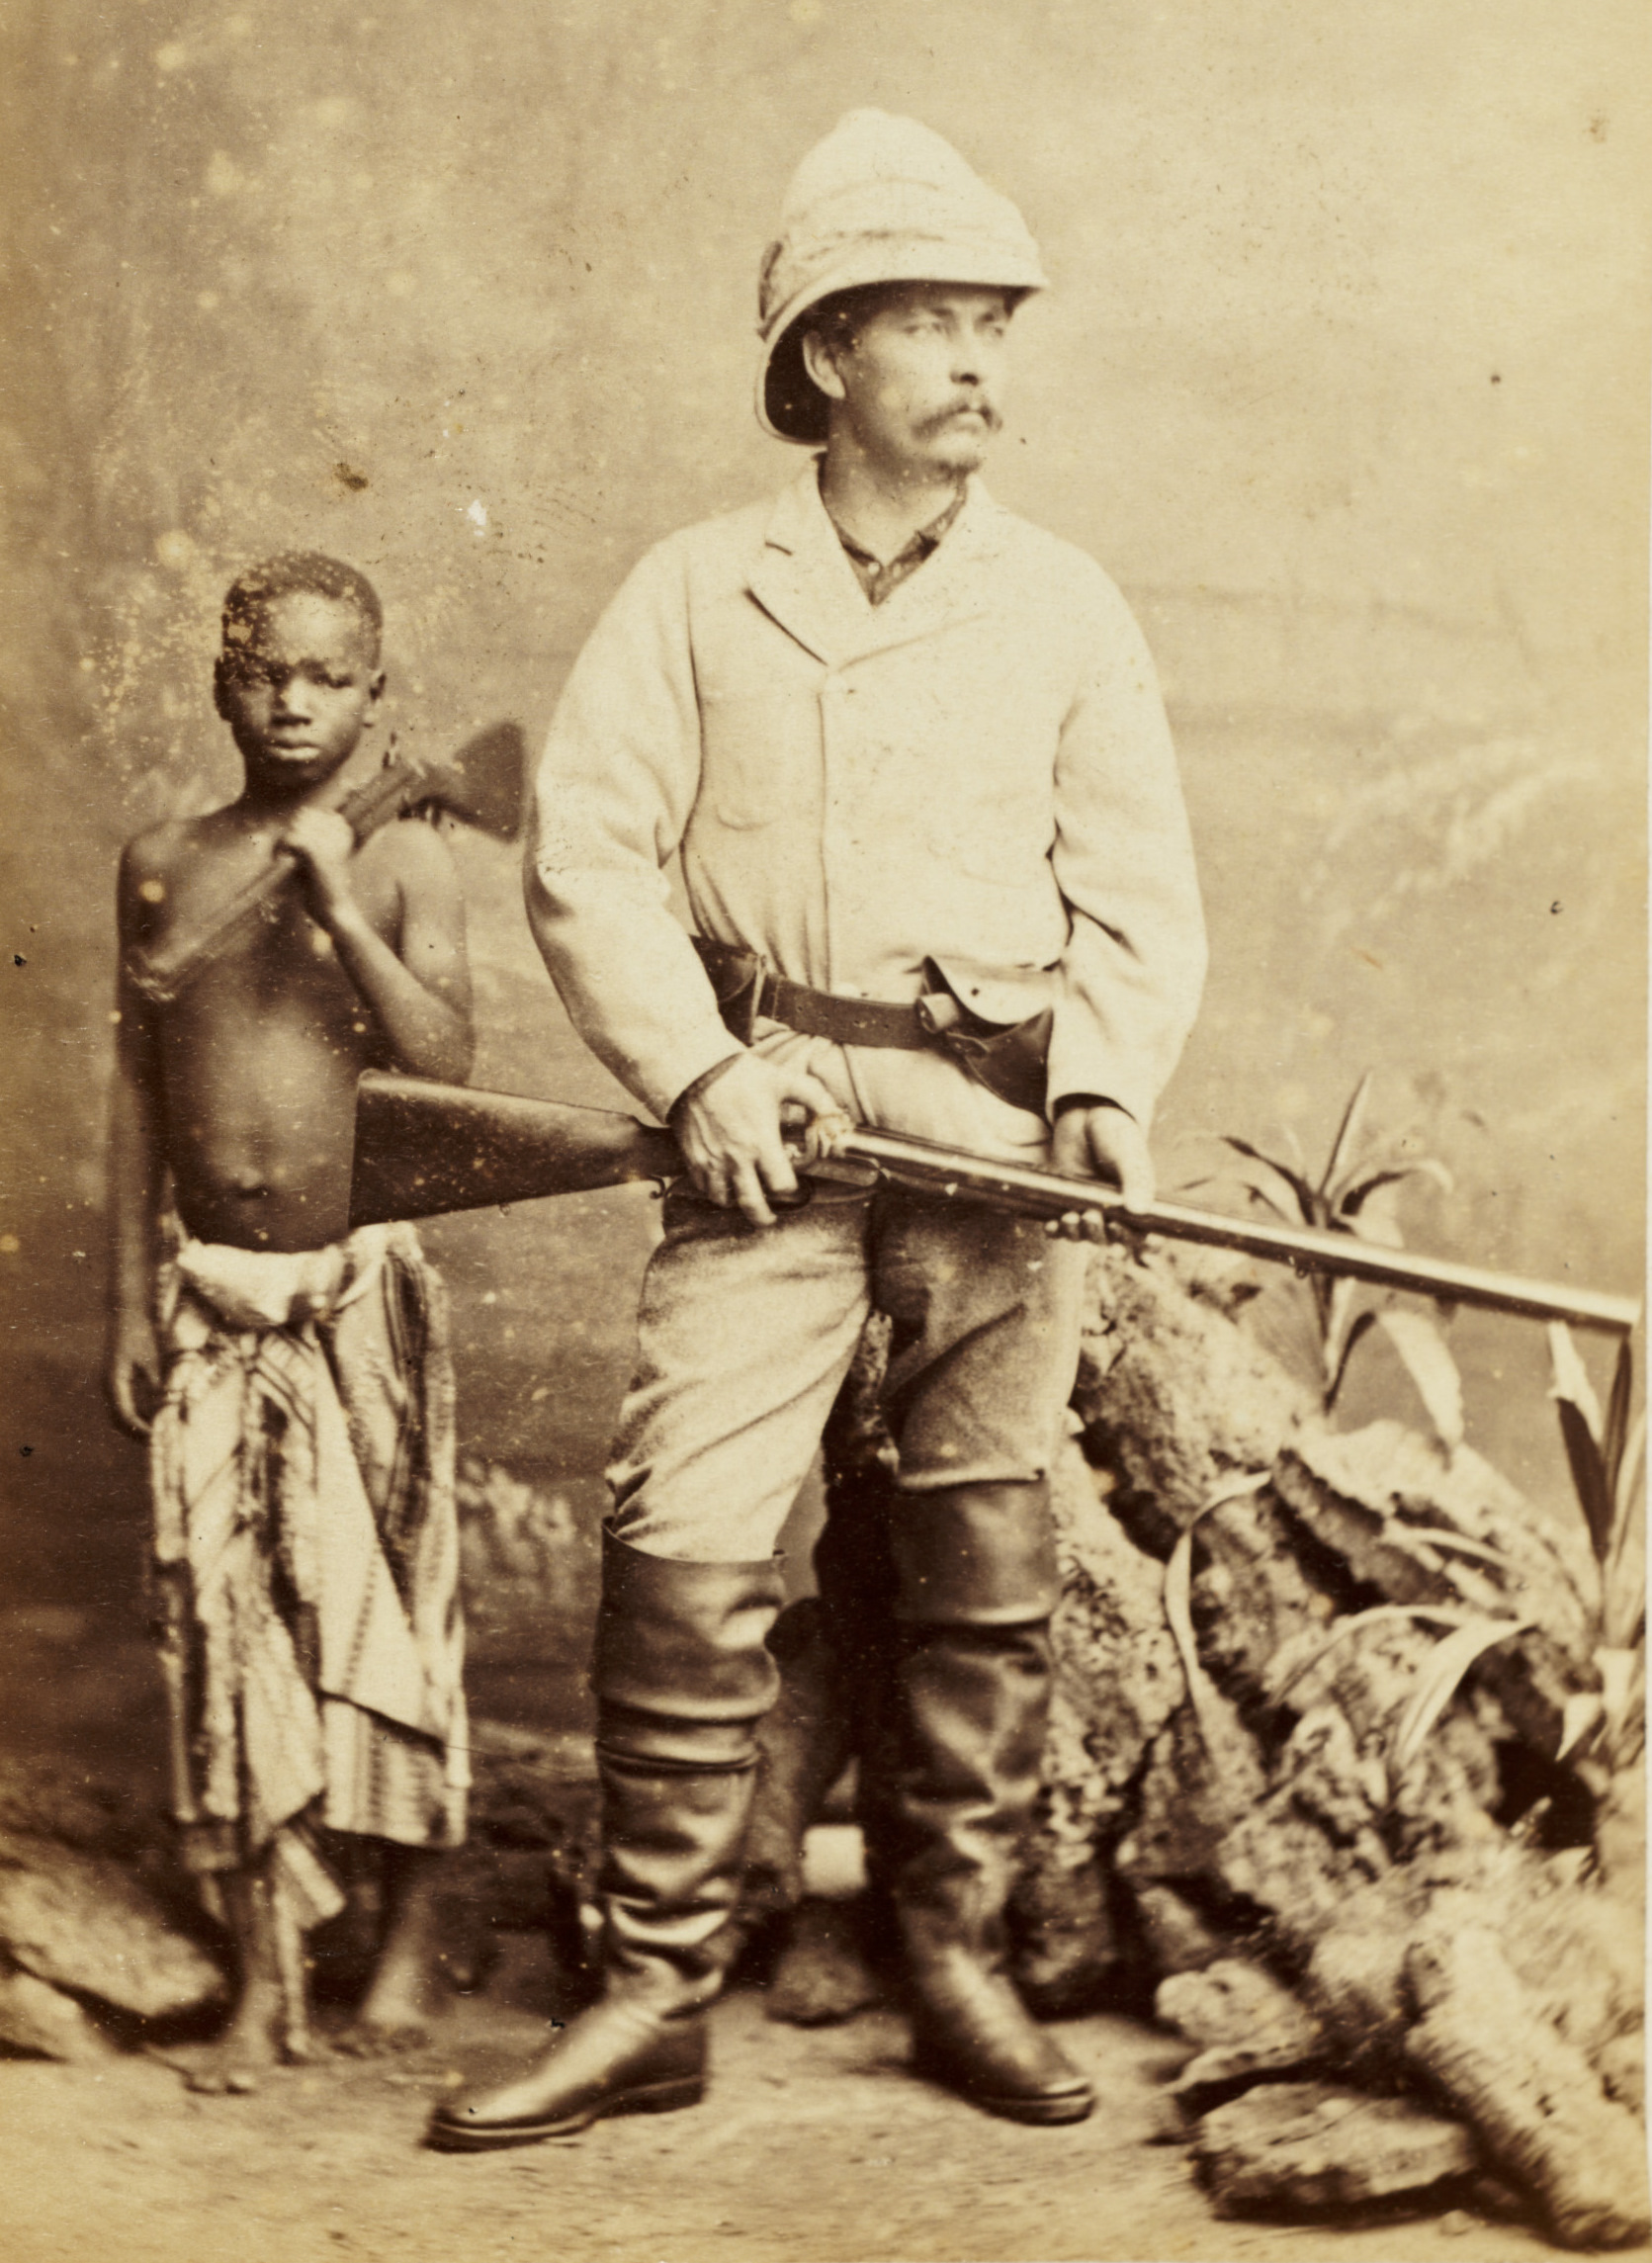 an analysis of slavery by stanley About slavery  slavery in history  global analysis of modern slavery and its role in  be delivered to the free the slaves account at morgan stanley via dtc.